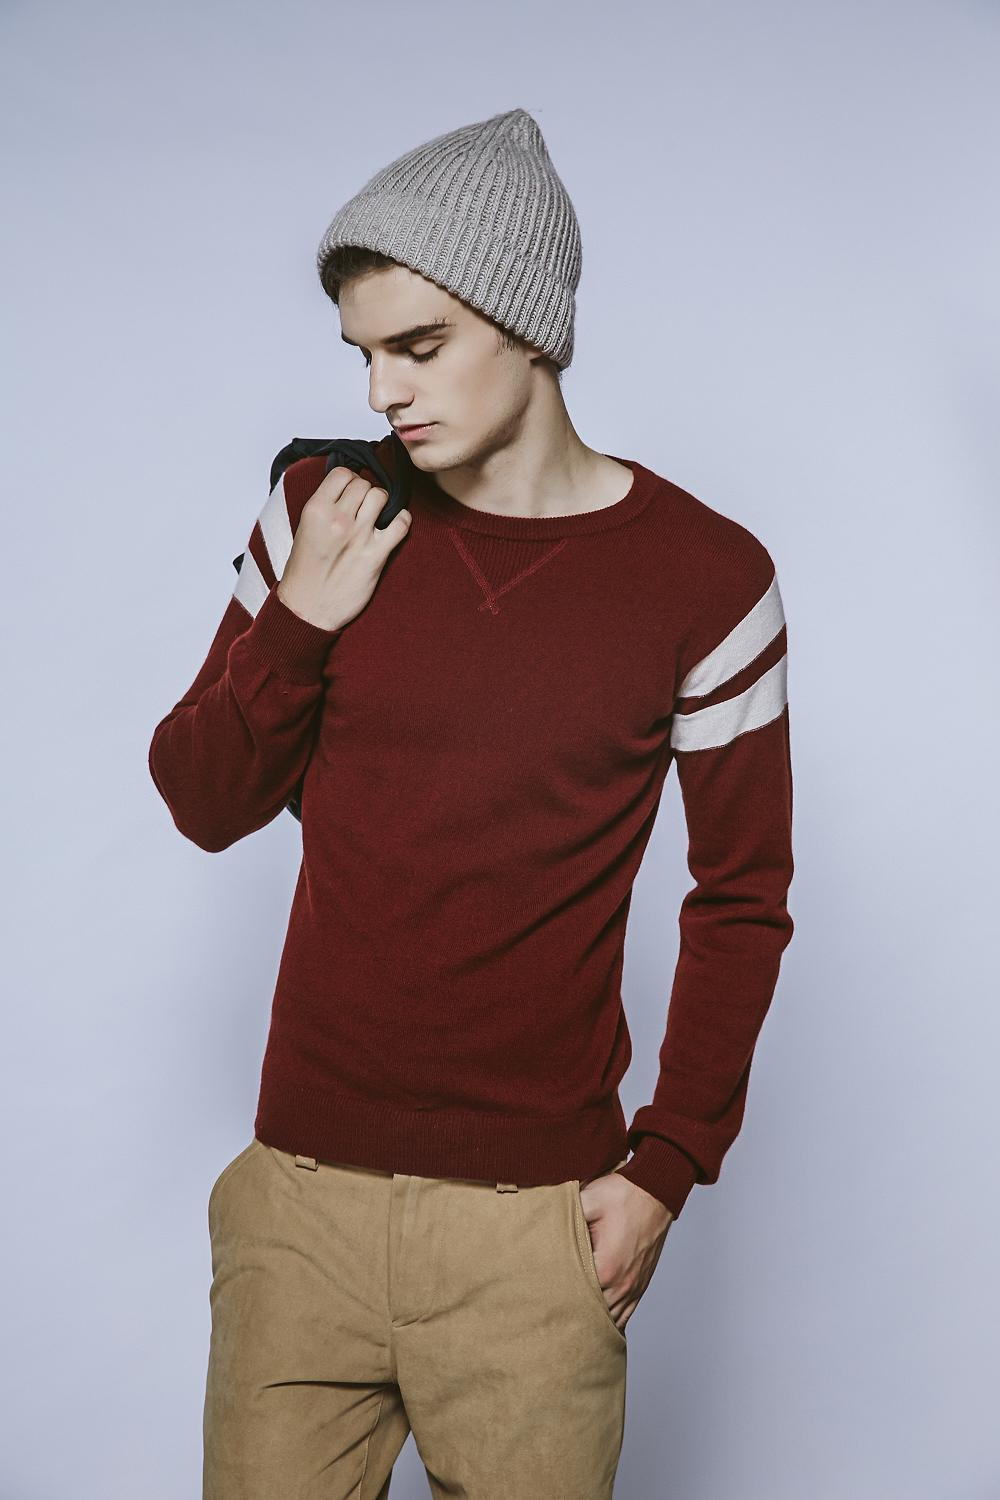 100%Cashmere Fall&Winter Round Neck Jumper Men Knitwear